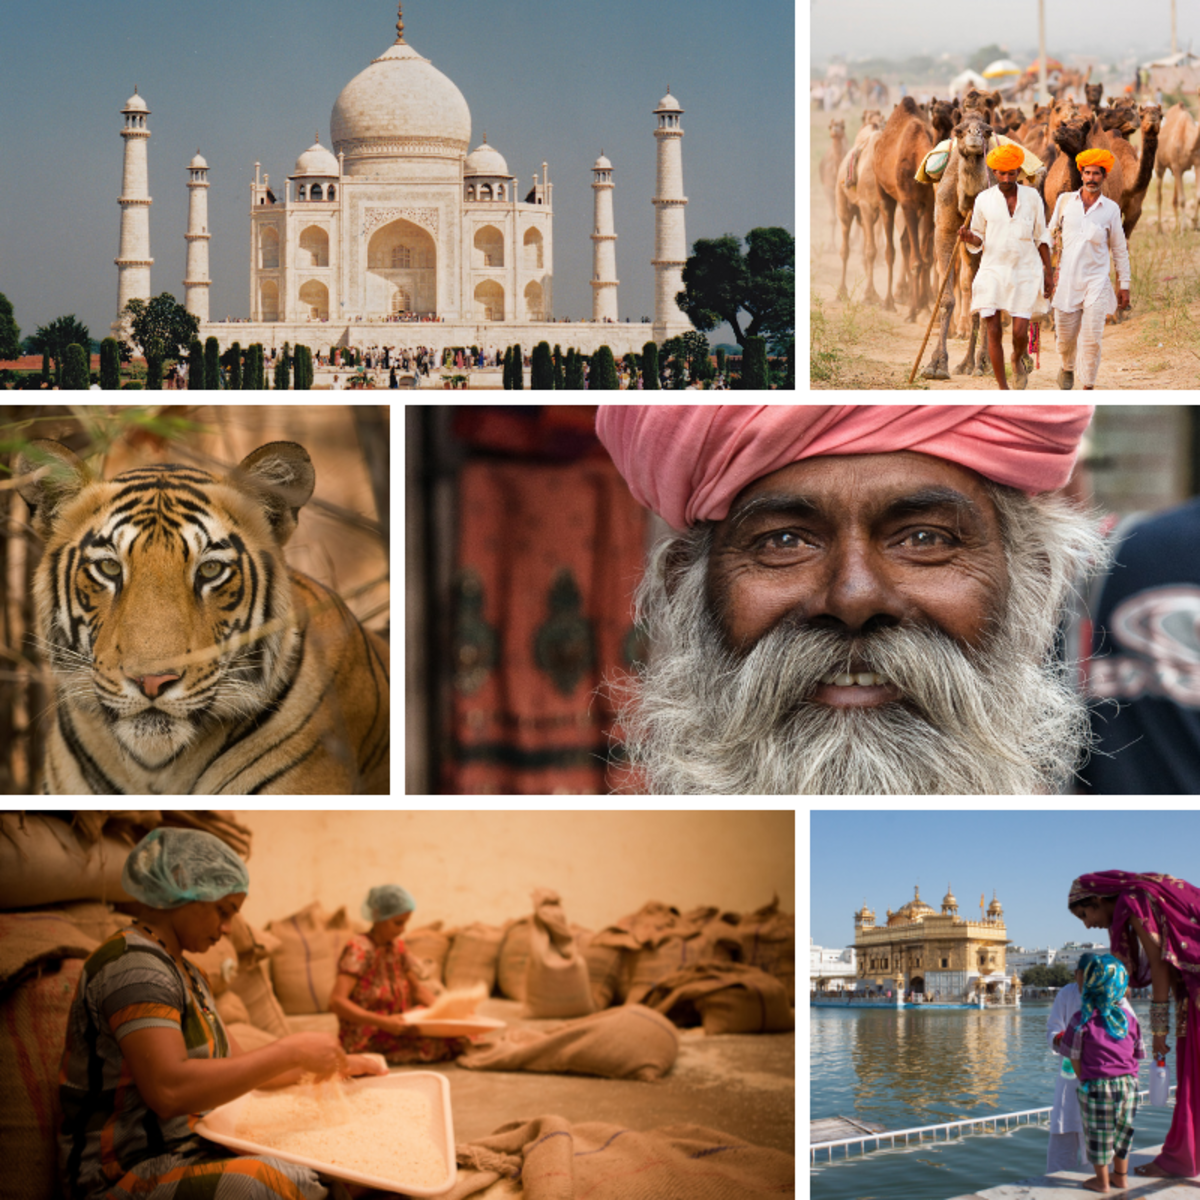 Essay on cultural diversity in india